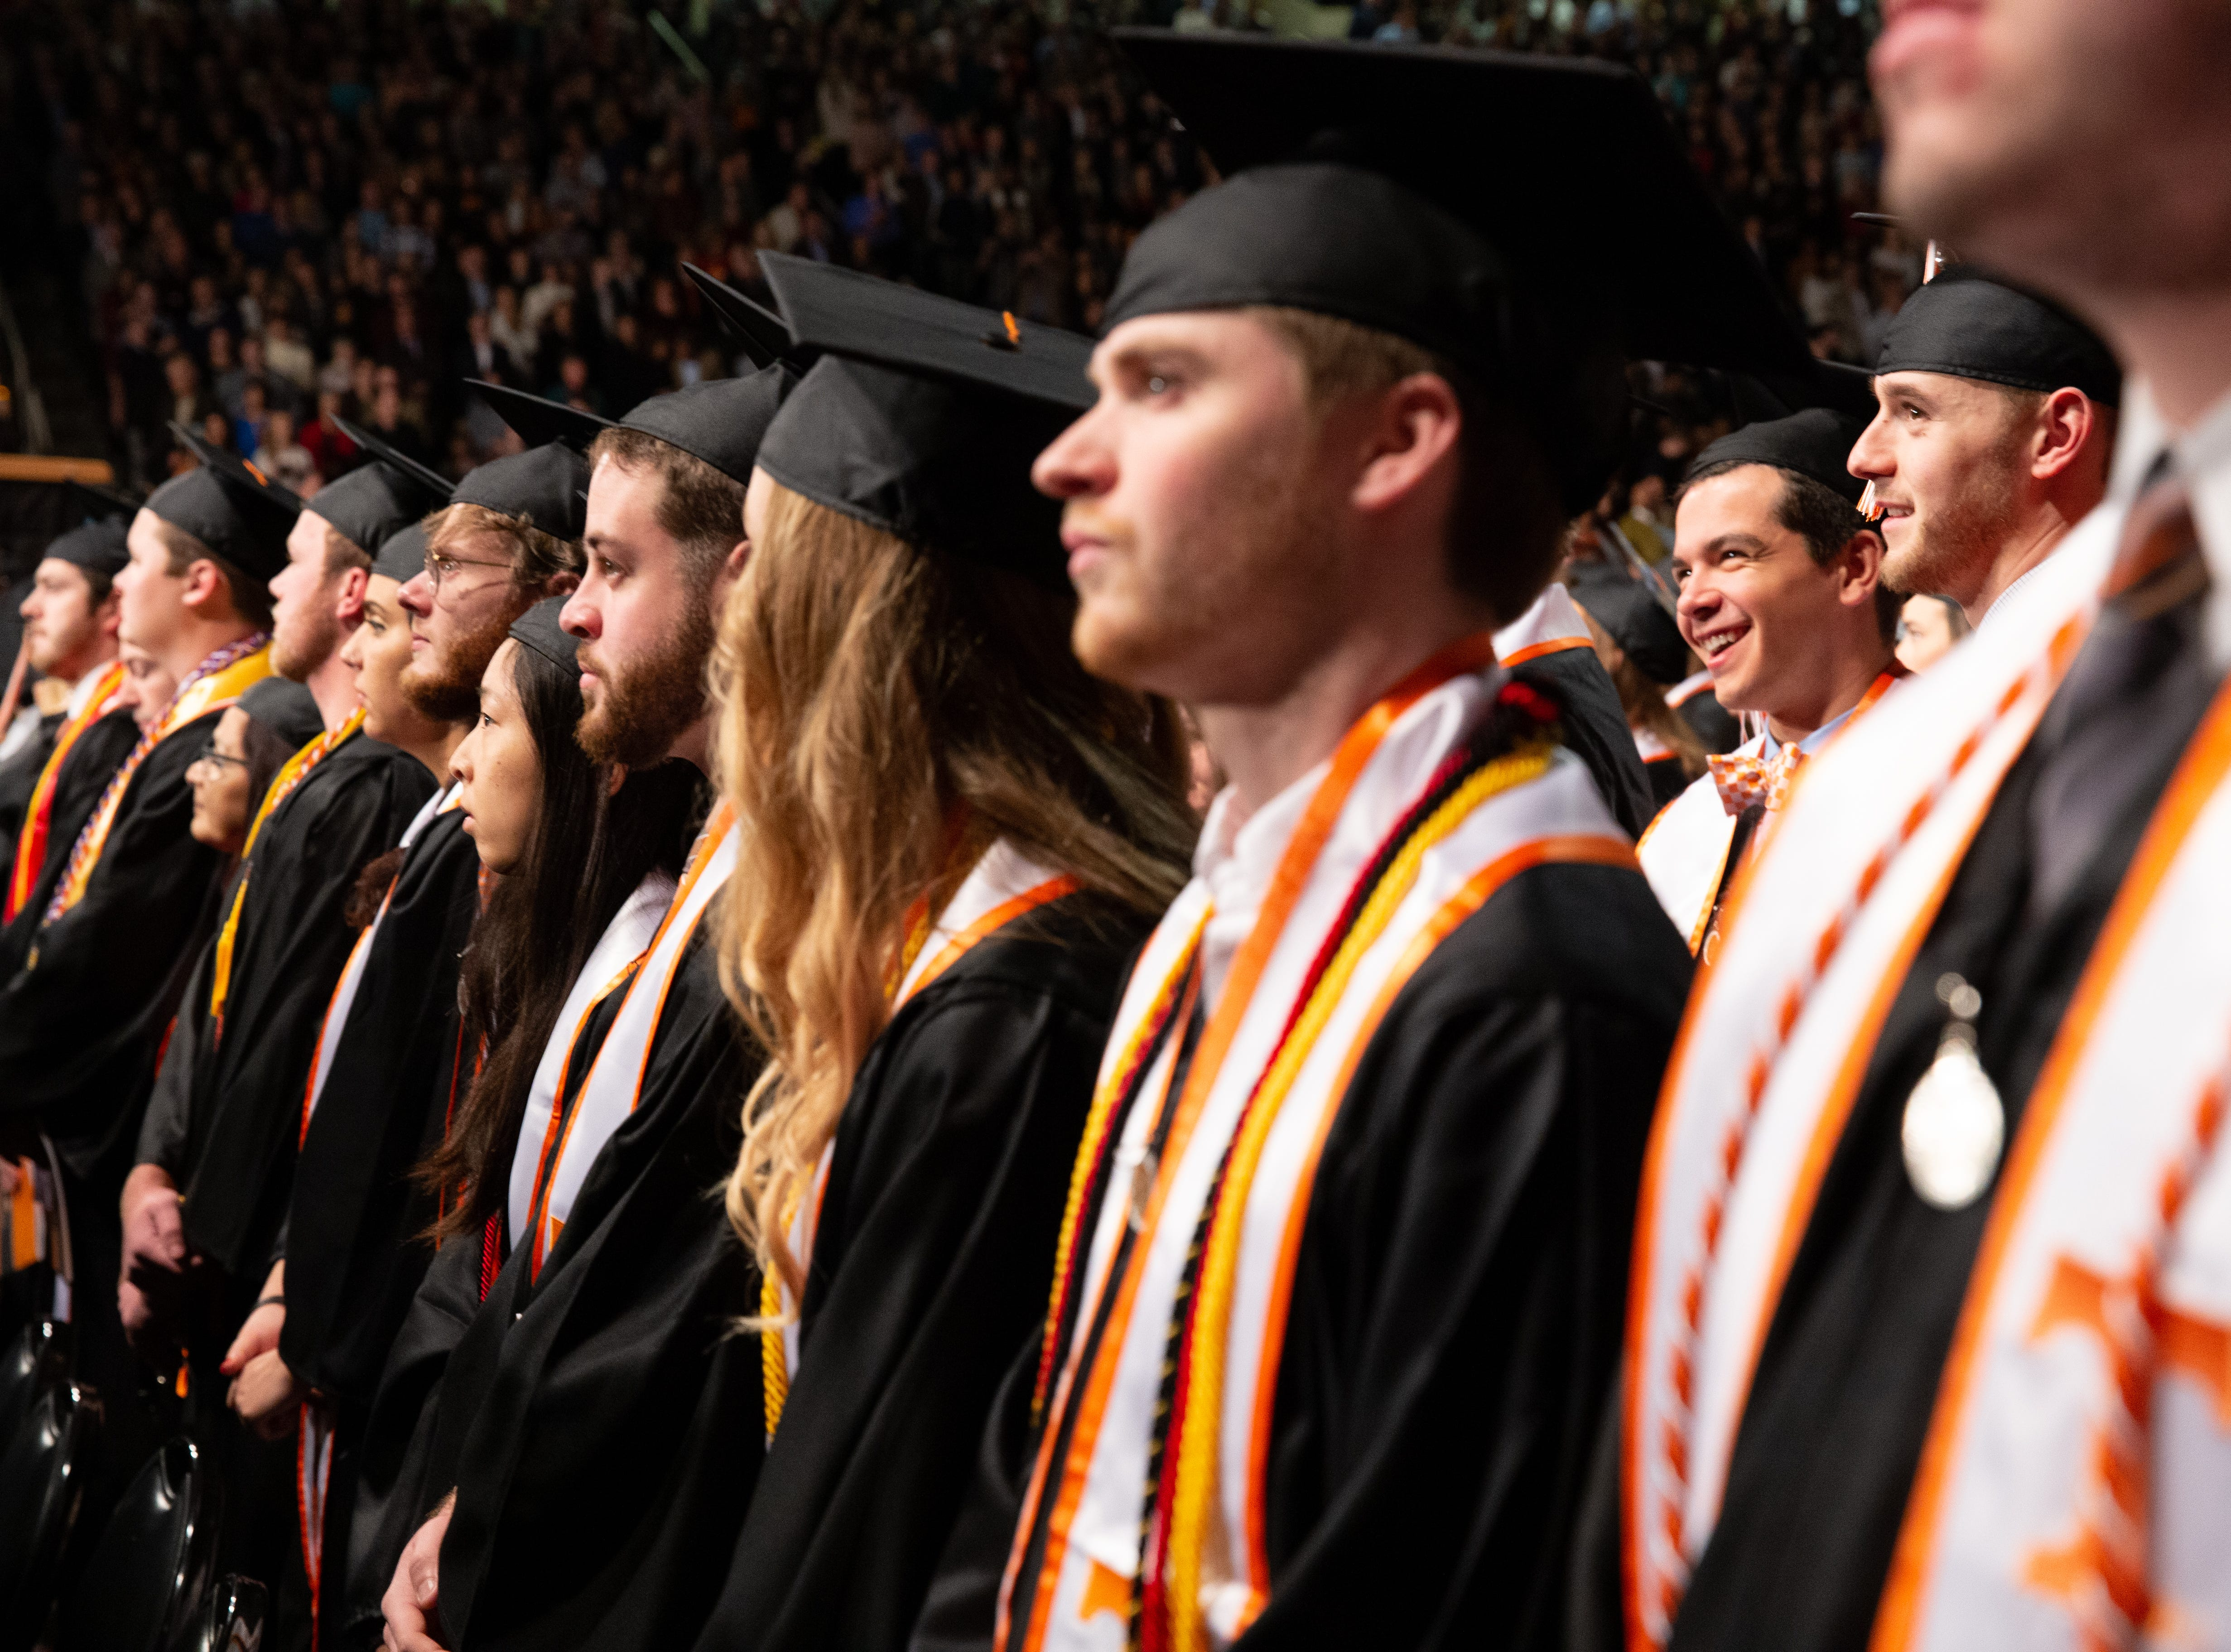 Graduates mingle before the ceremony begins during the University of Tennessee winter Commencement ceremony at Thompson-Boling Assembly Center and Arena in Knoxville Friday, Dec. 14, 2018.